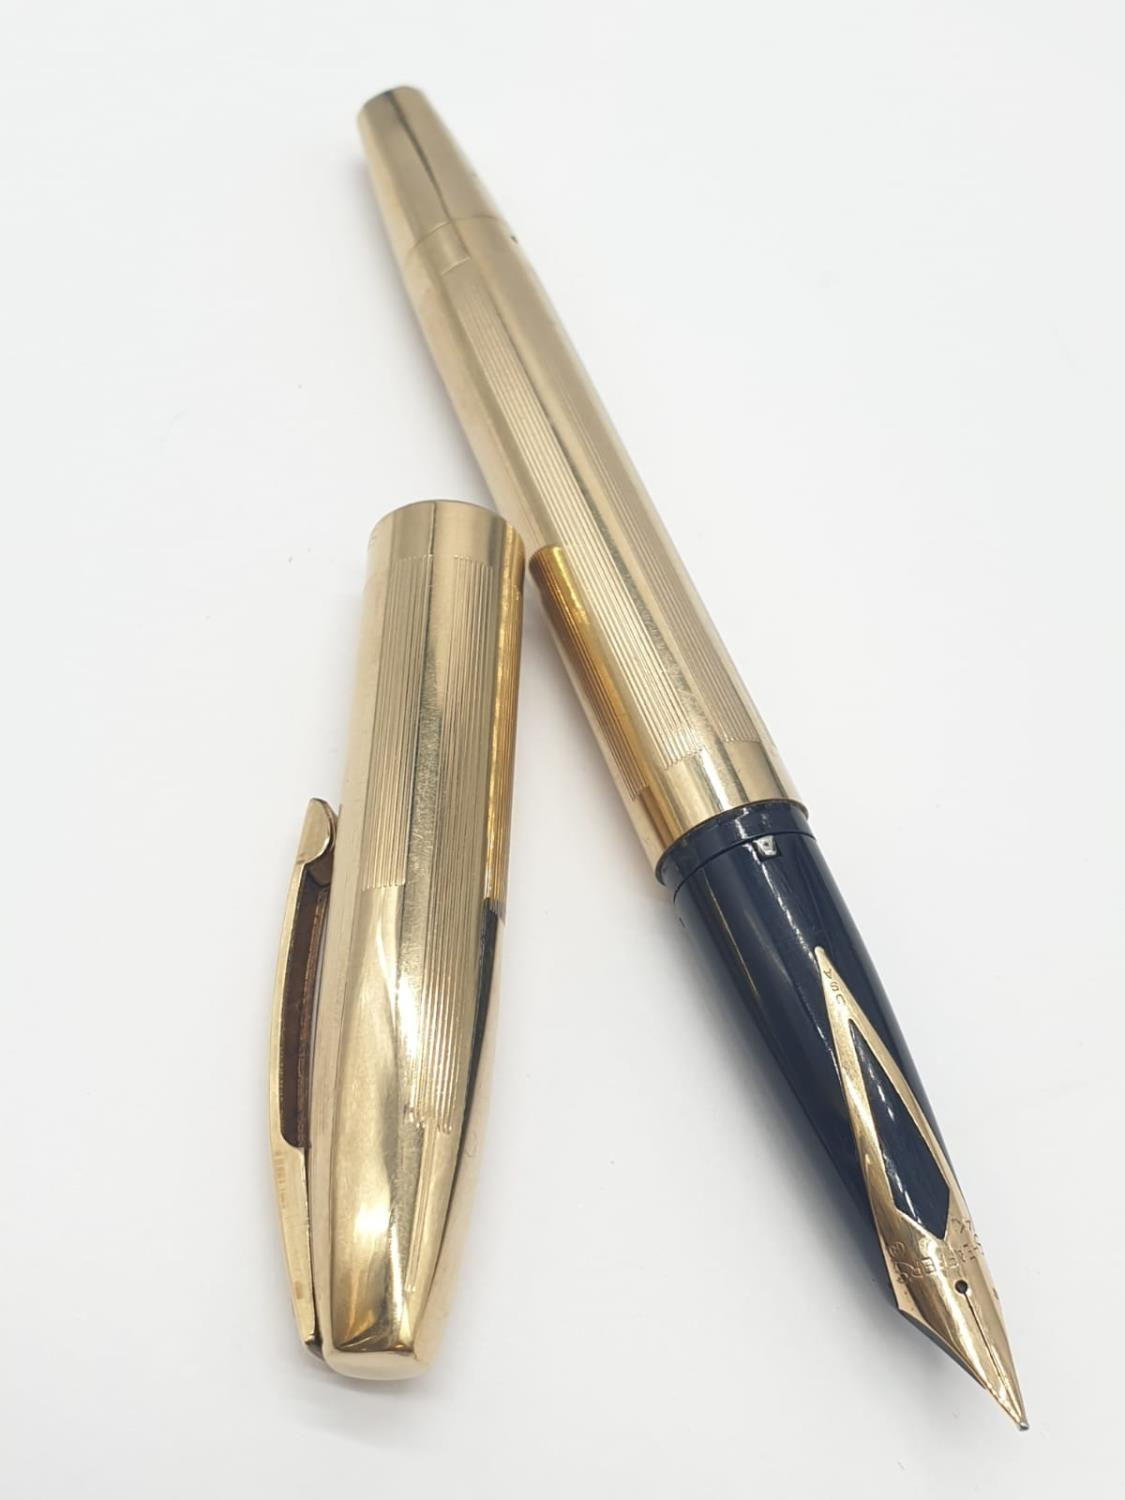 Vintage Shaeffer Gold Plated FOUNTAIN PEN with 14ct Gold Nib.